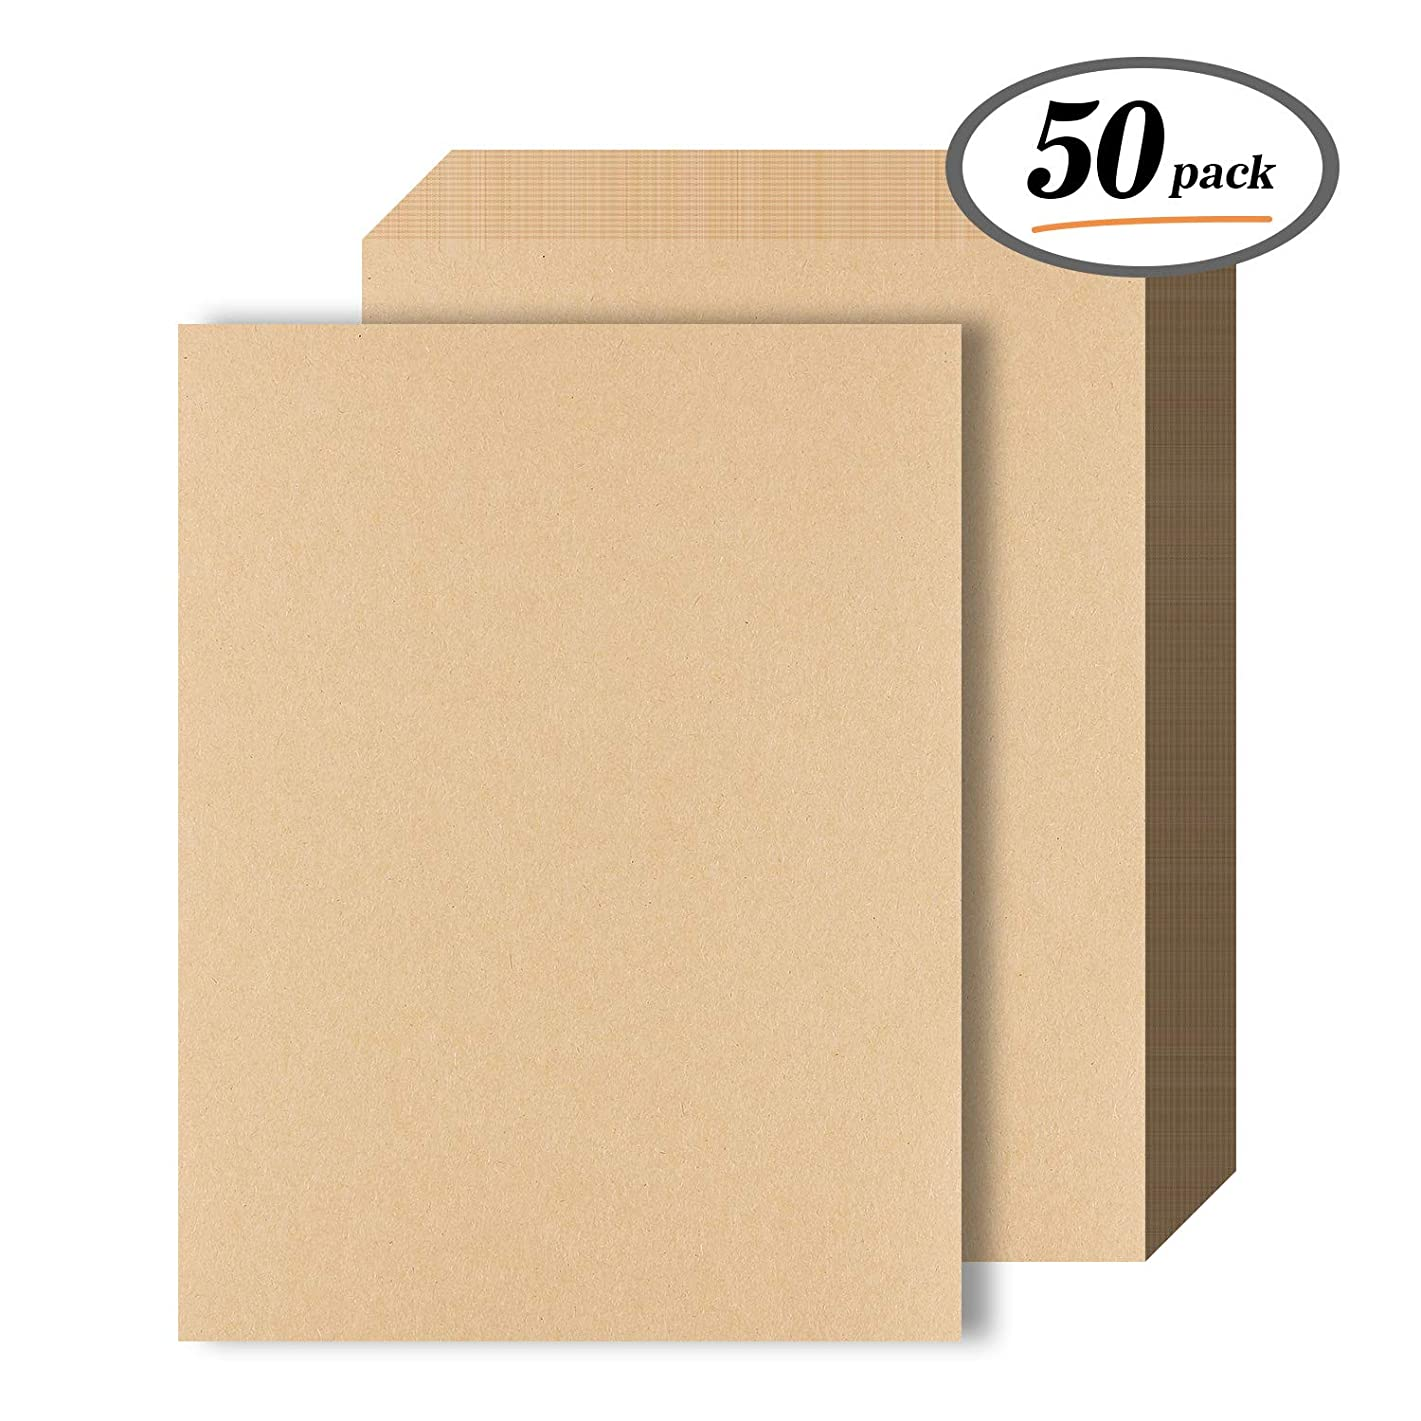 Kraft Paper – 50 Sheets 120 GSM Letter Sized Brown Stationery Paper for Arts, Crafts, and Office Use